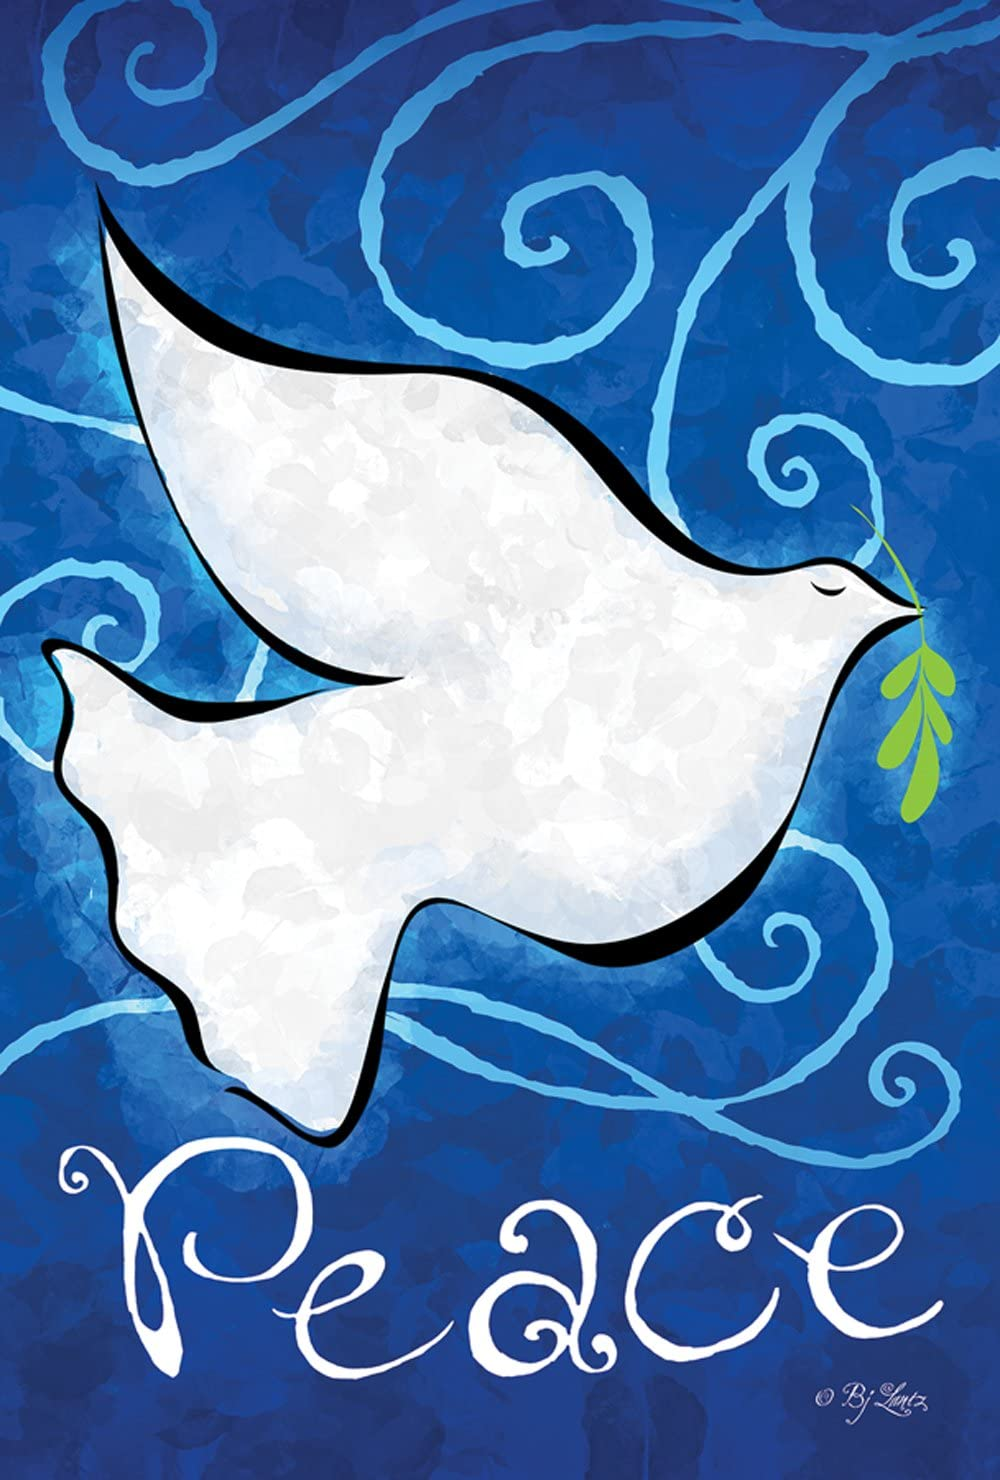 Toland Home Garden Snow White Dove 12.5 x 18 Inch Decorative Inspirational Peace Bird Garden Flag - 1110458